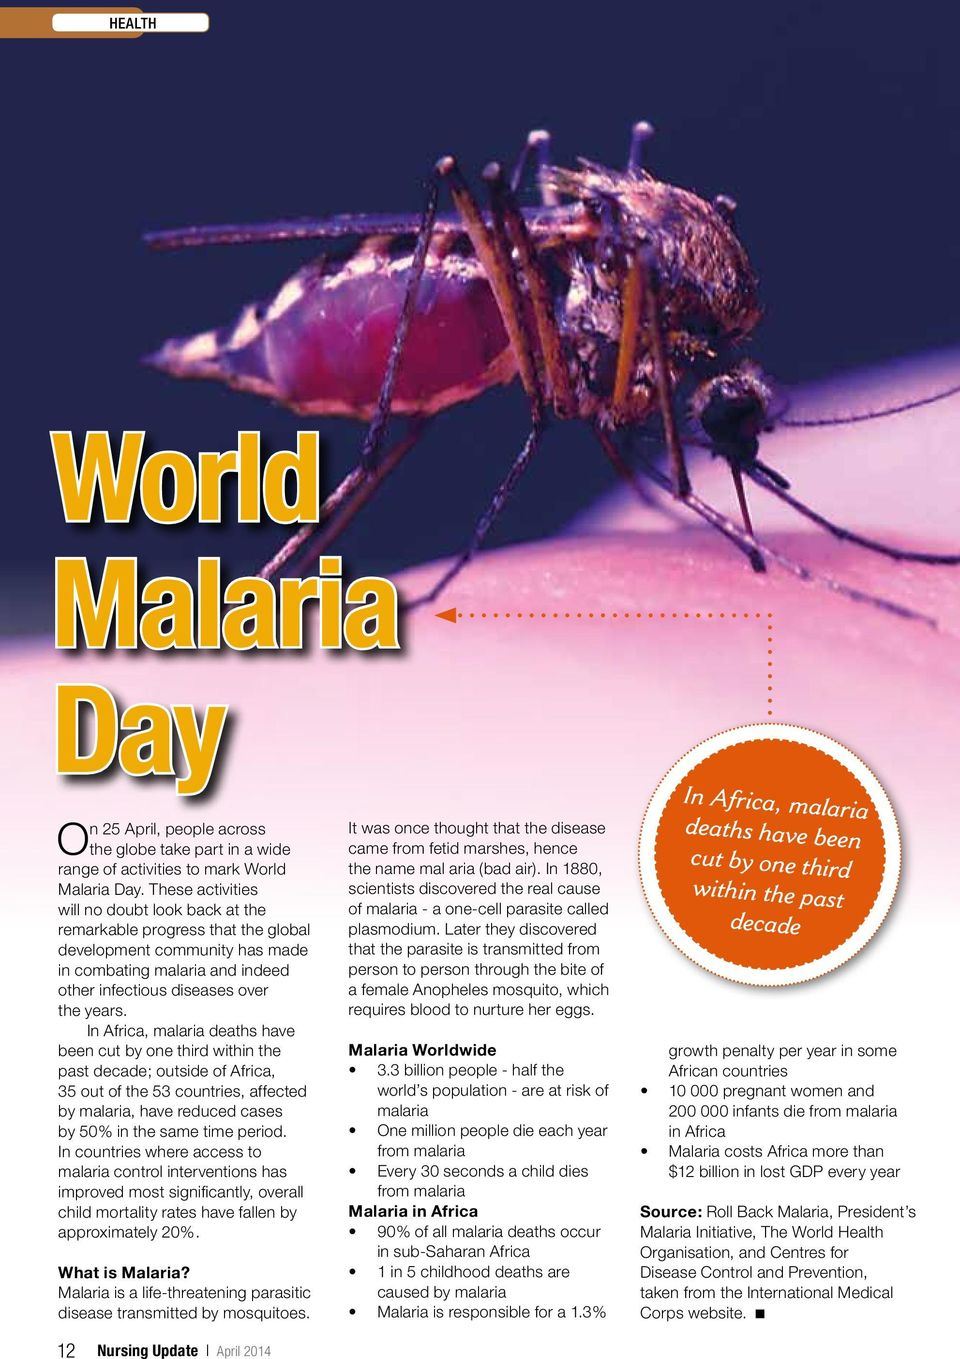 In Africa, malaria deaths have been cut by one third within the past decade; outside of Africa, 35 out of the 53 countries, affected by malaria, have reduced cases by 50% in the same time period.